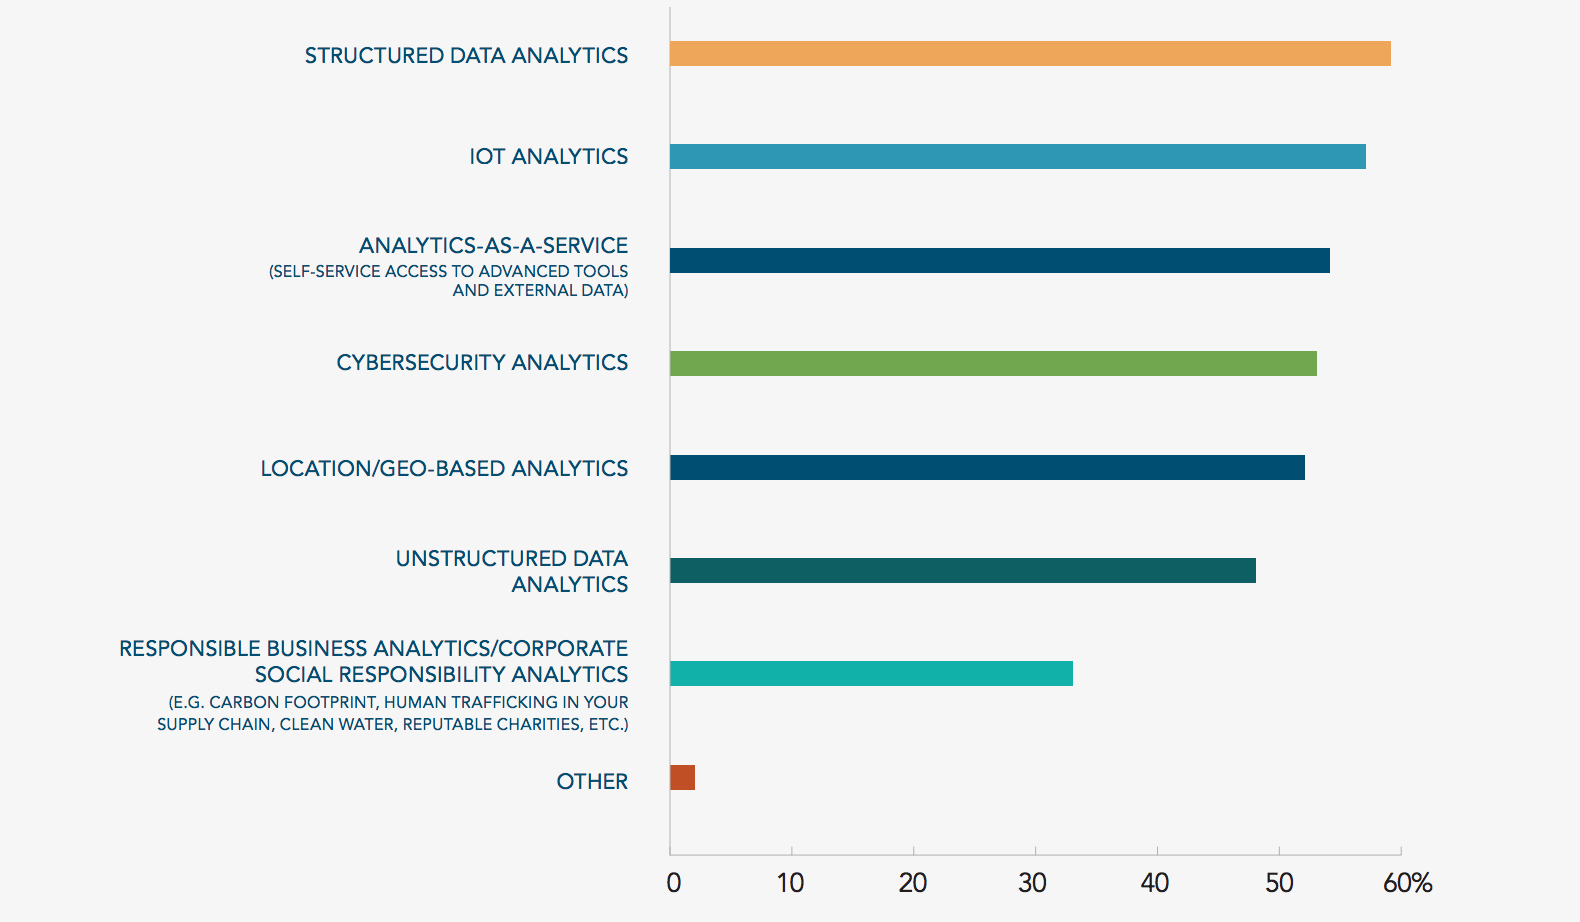 Top areas of analytics insights Source: Dun & Bradstreet/Forbes Insights